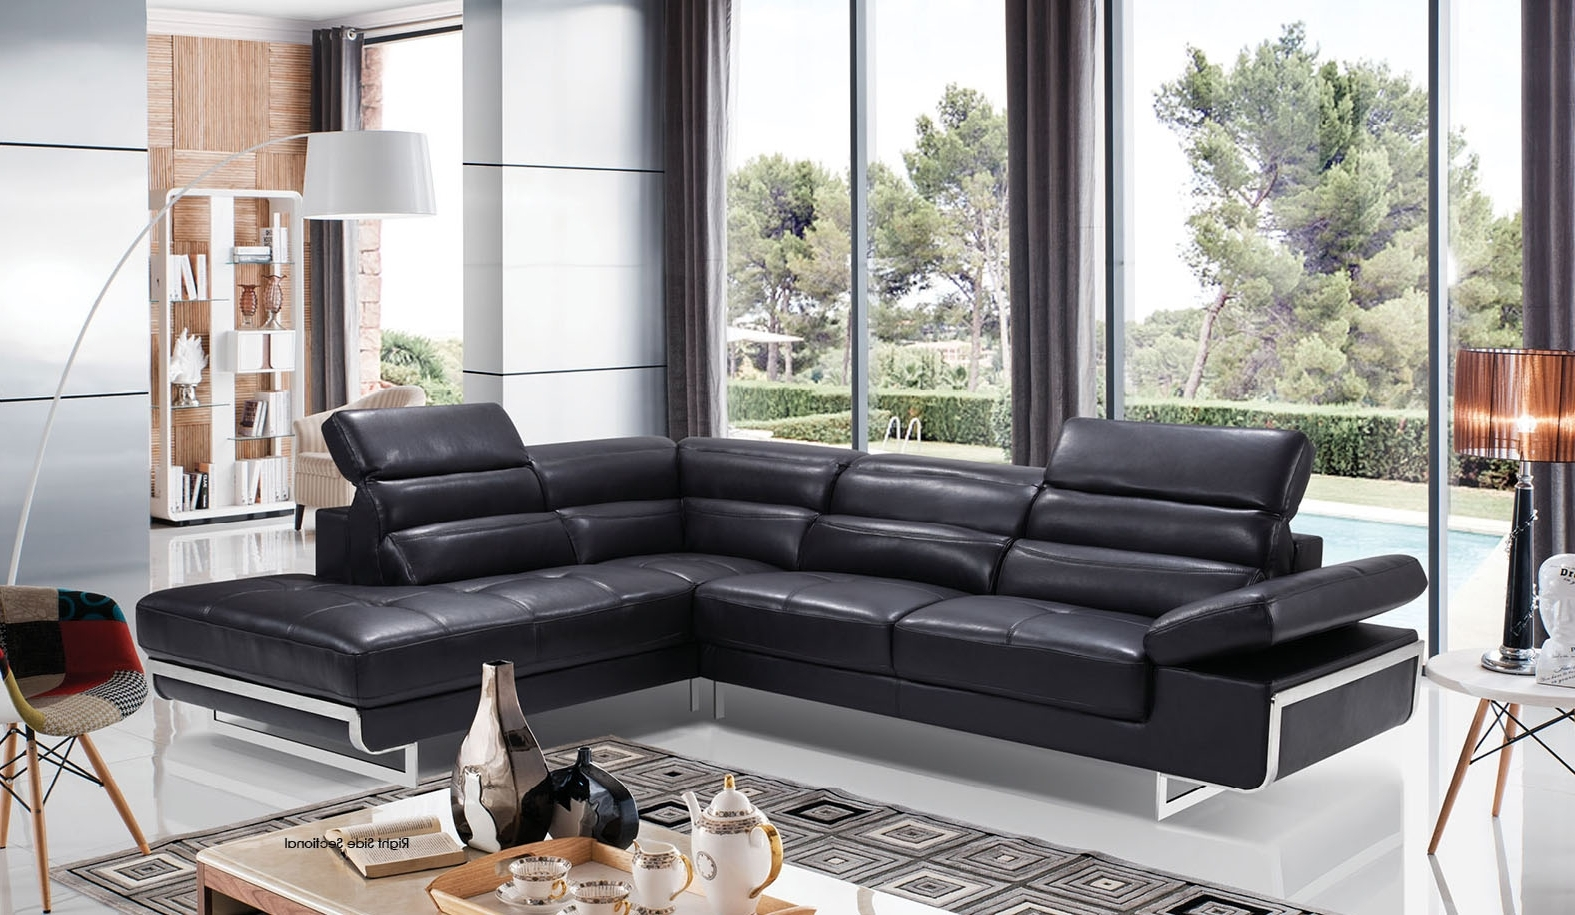 Most Recently Released High Class Italian Leather Living Room Furniture Jacksonville For Jacksonville Fl Sectional Sofas (View 3 of 15)